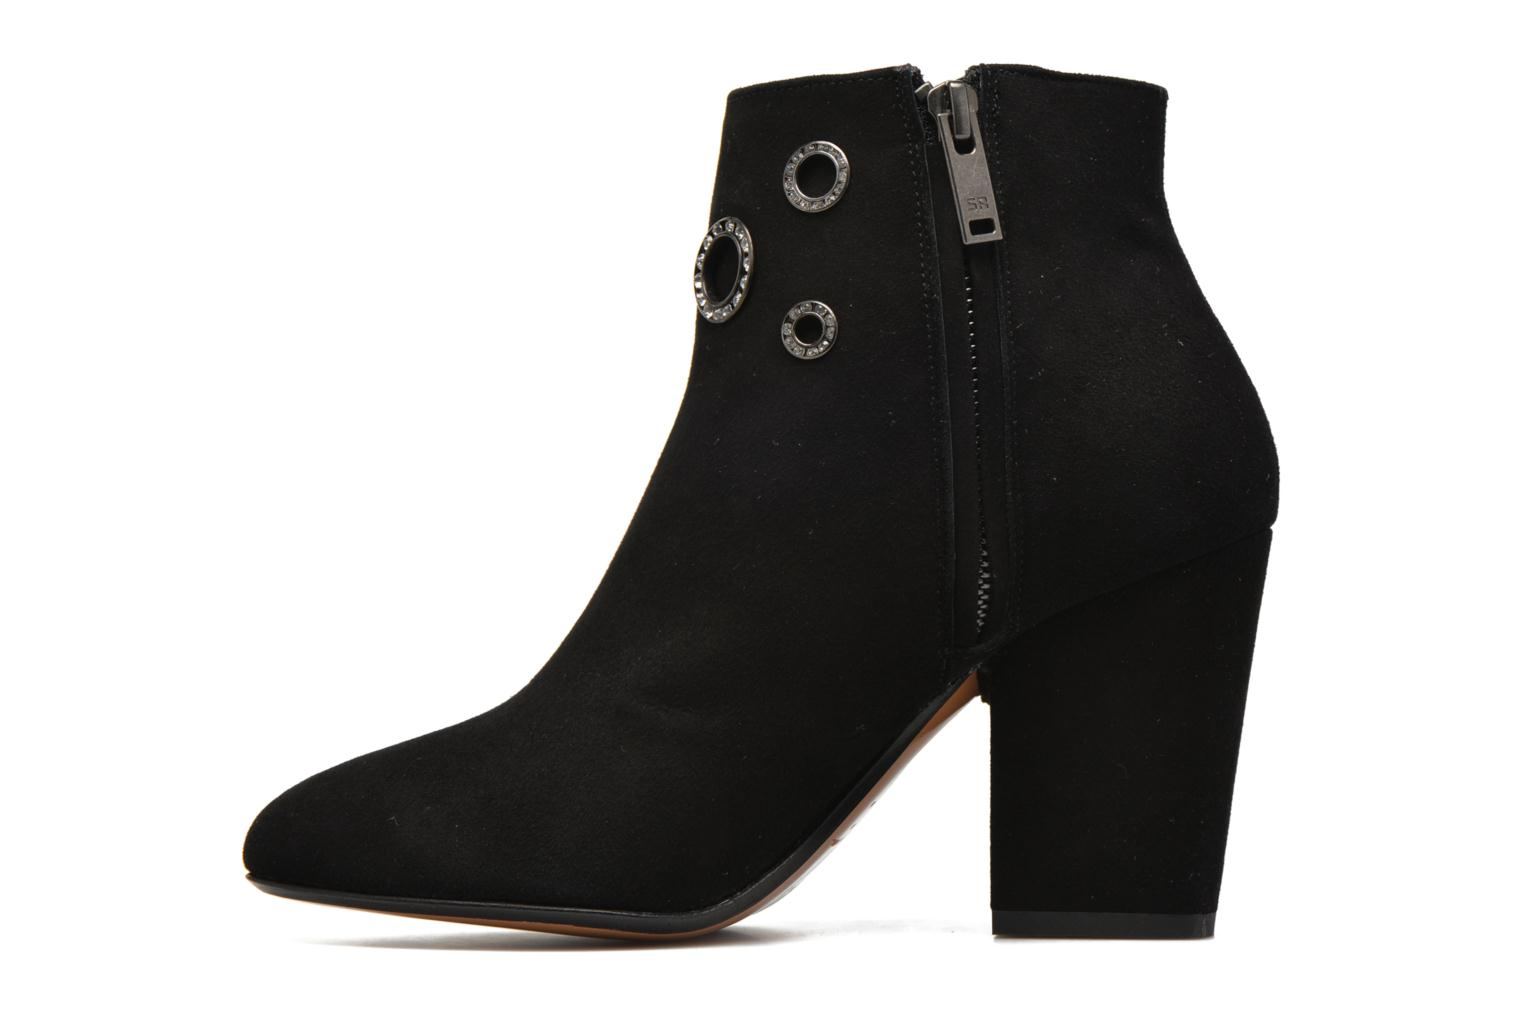 Bottines et boots Sonia Rykiel Bottine Strassée Noir vue face